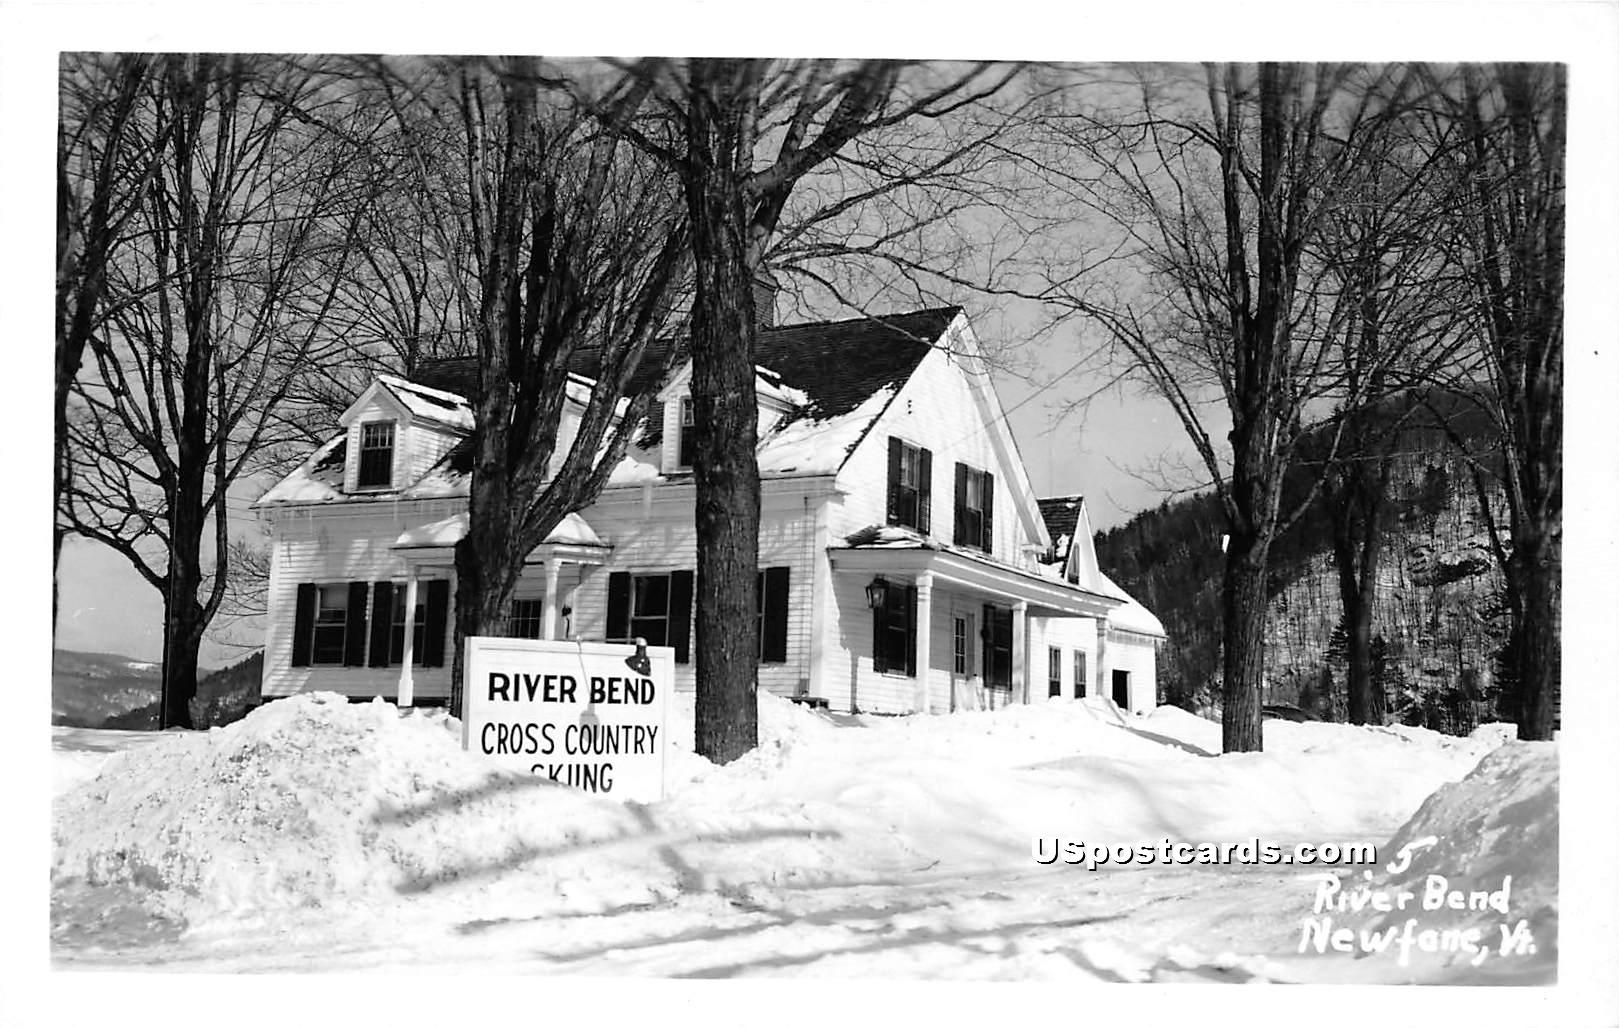 River Bend Cross Country Skiing - Newfane, Vermont VT Postcard